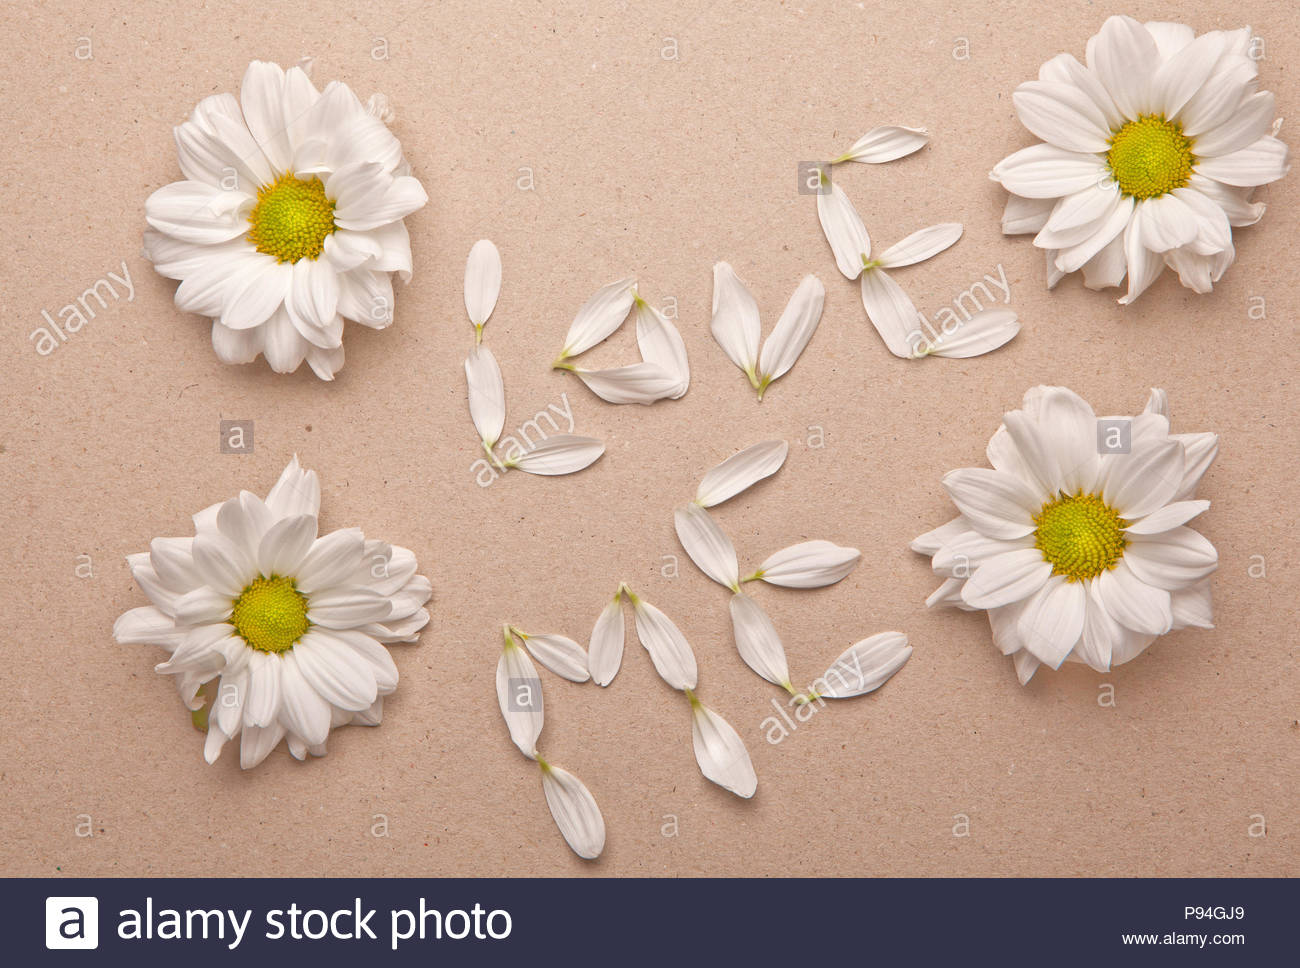 flowers petals love text - Stock Image